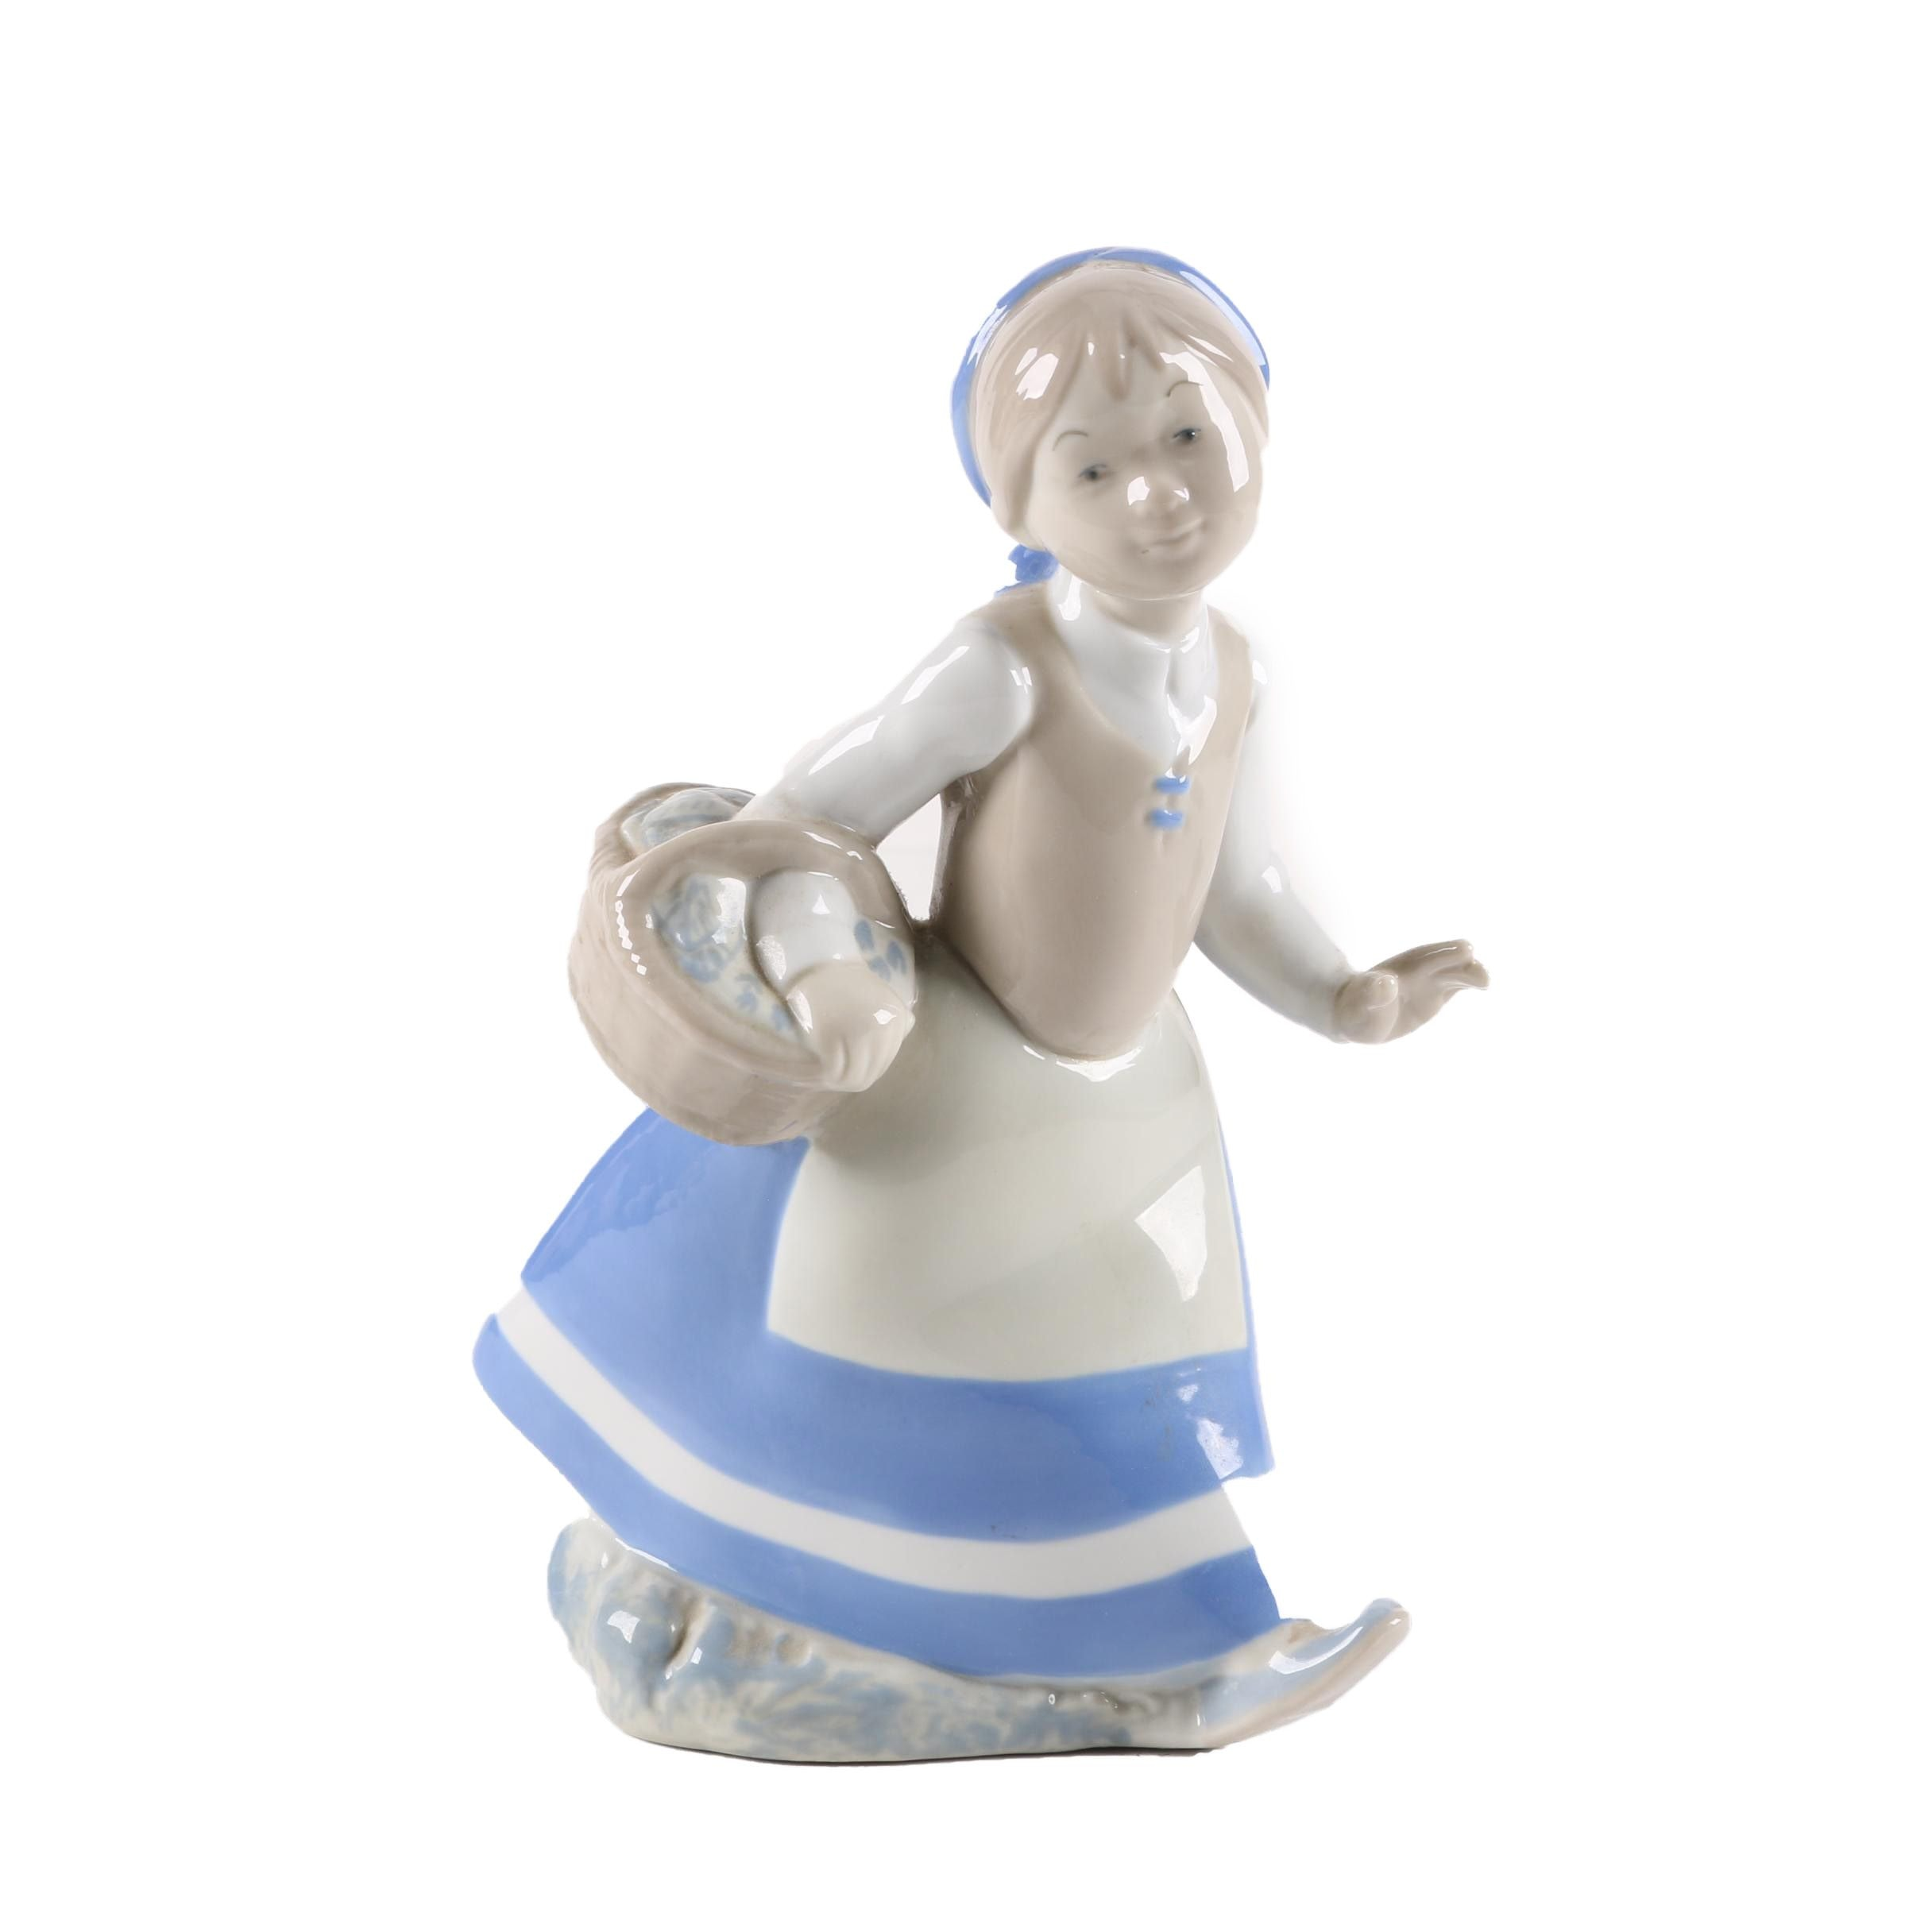 Rex Hand Made Porcelain Figurine of Girl with Basket